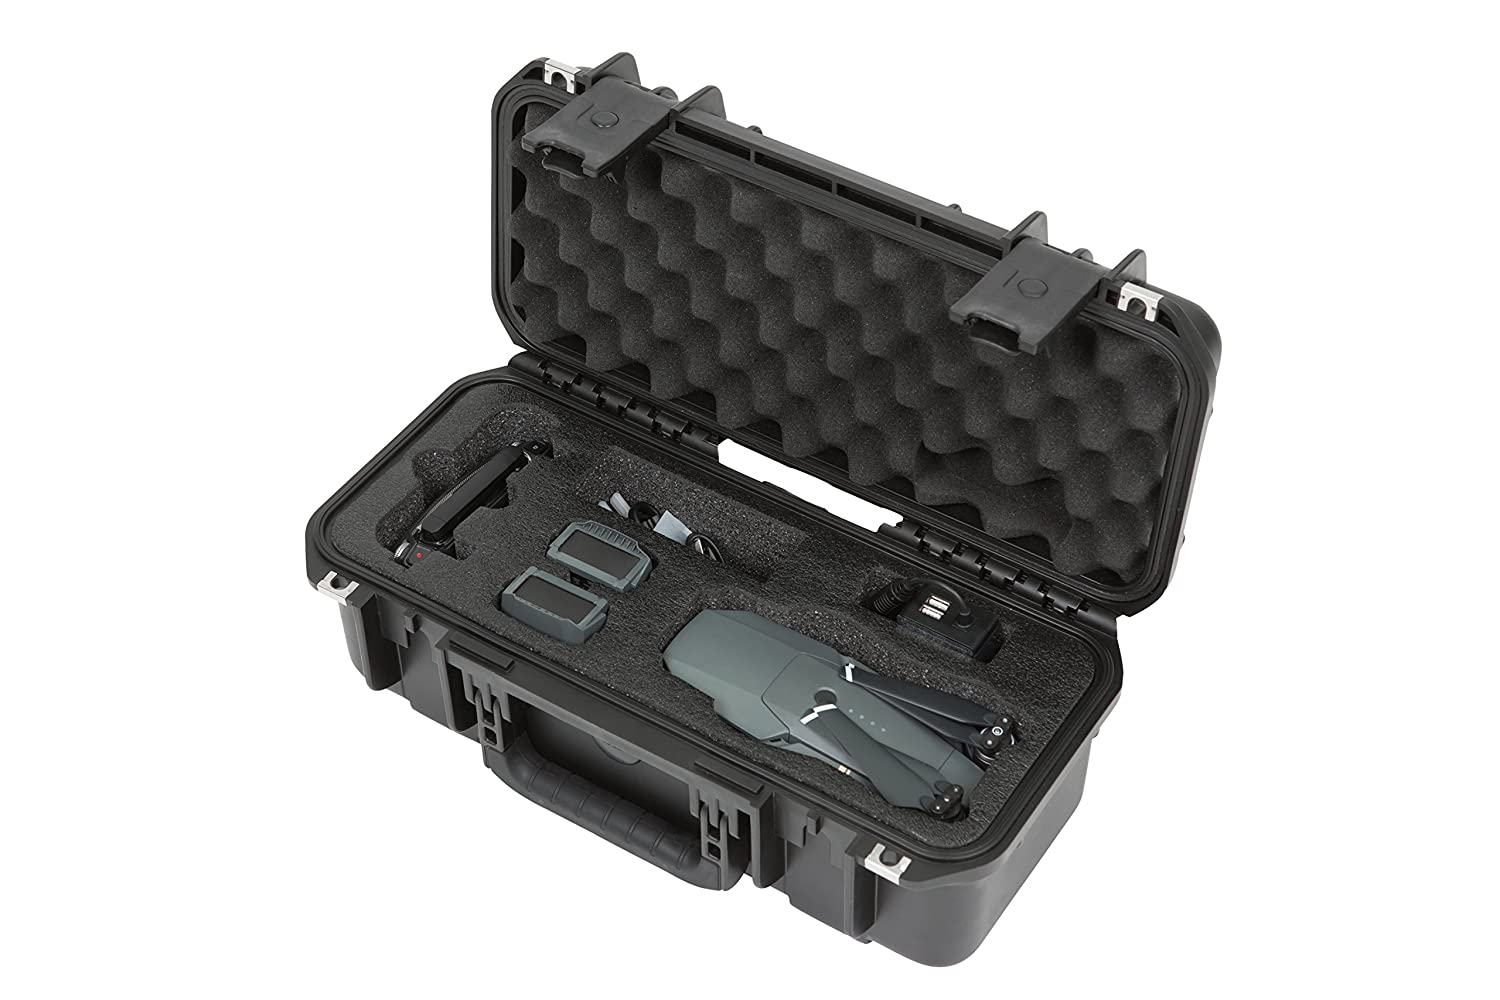 SKB Cases 3i1706-6DJMV iSeries Injection Molded Waterproof Carry Case compatible with DJI Mavic Pro Drone/Quadcopter and its Accessories 3I-1706-6DJMV